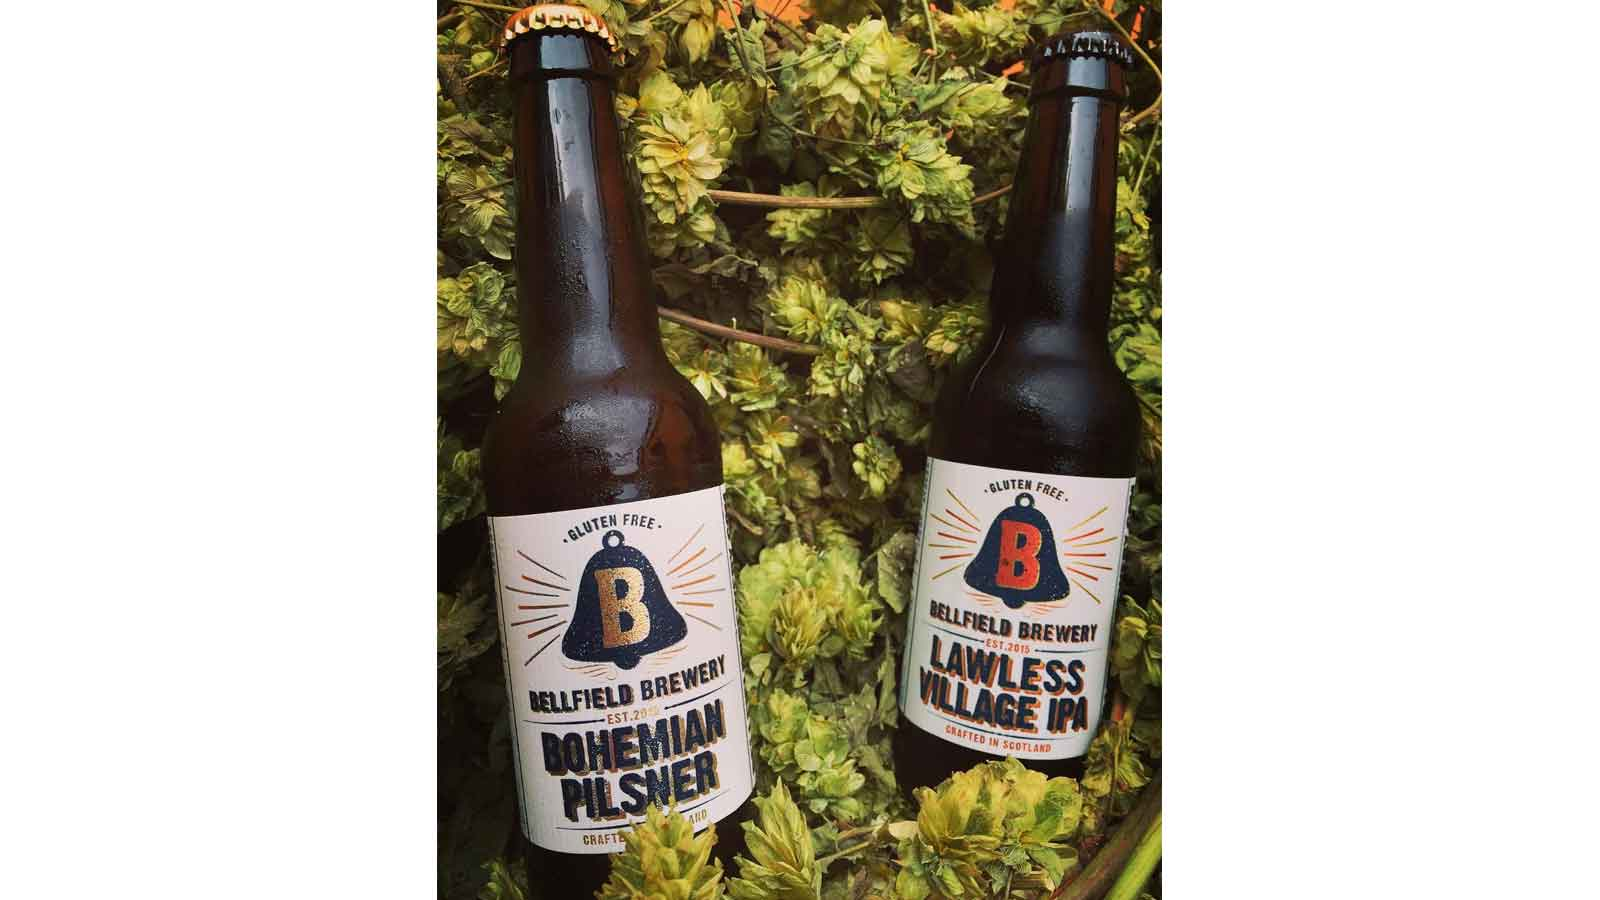 Bellfield gluten-free beers now in Malta